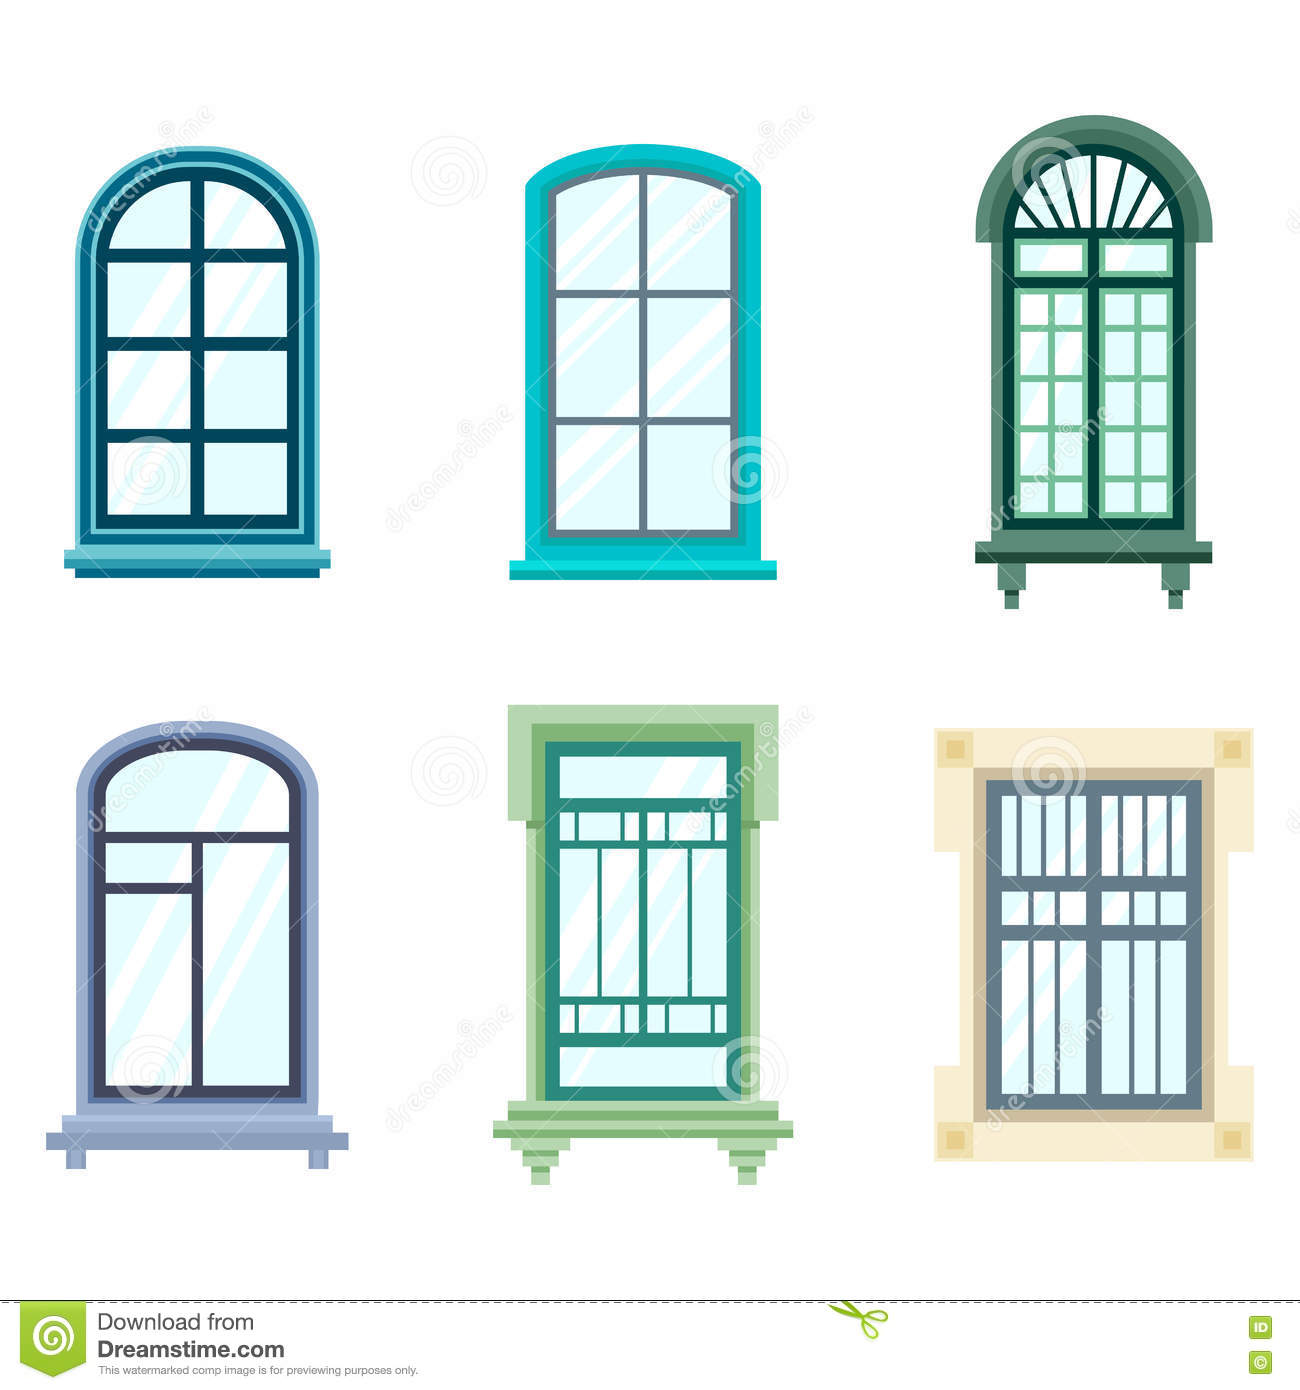 Window frame clipart the image kid has it for Window design clipart